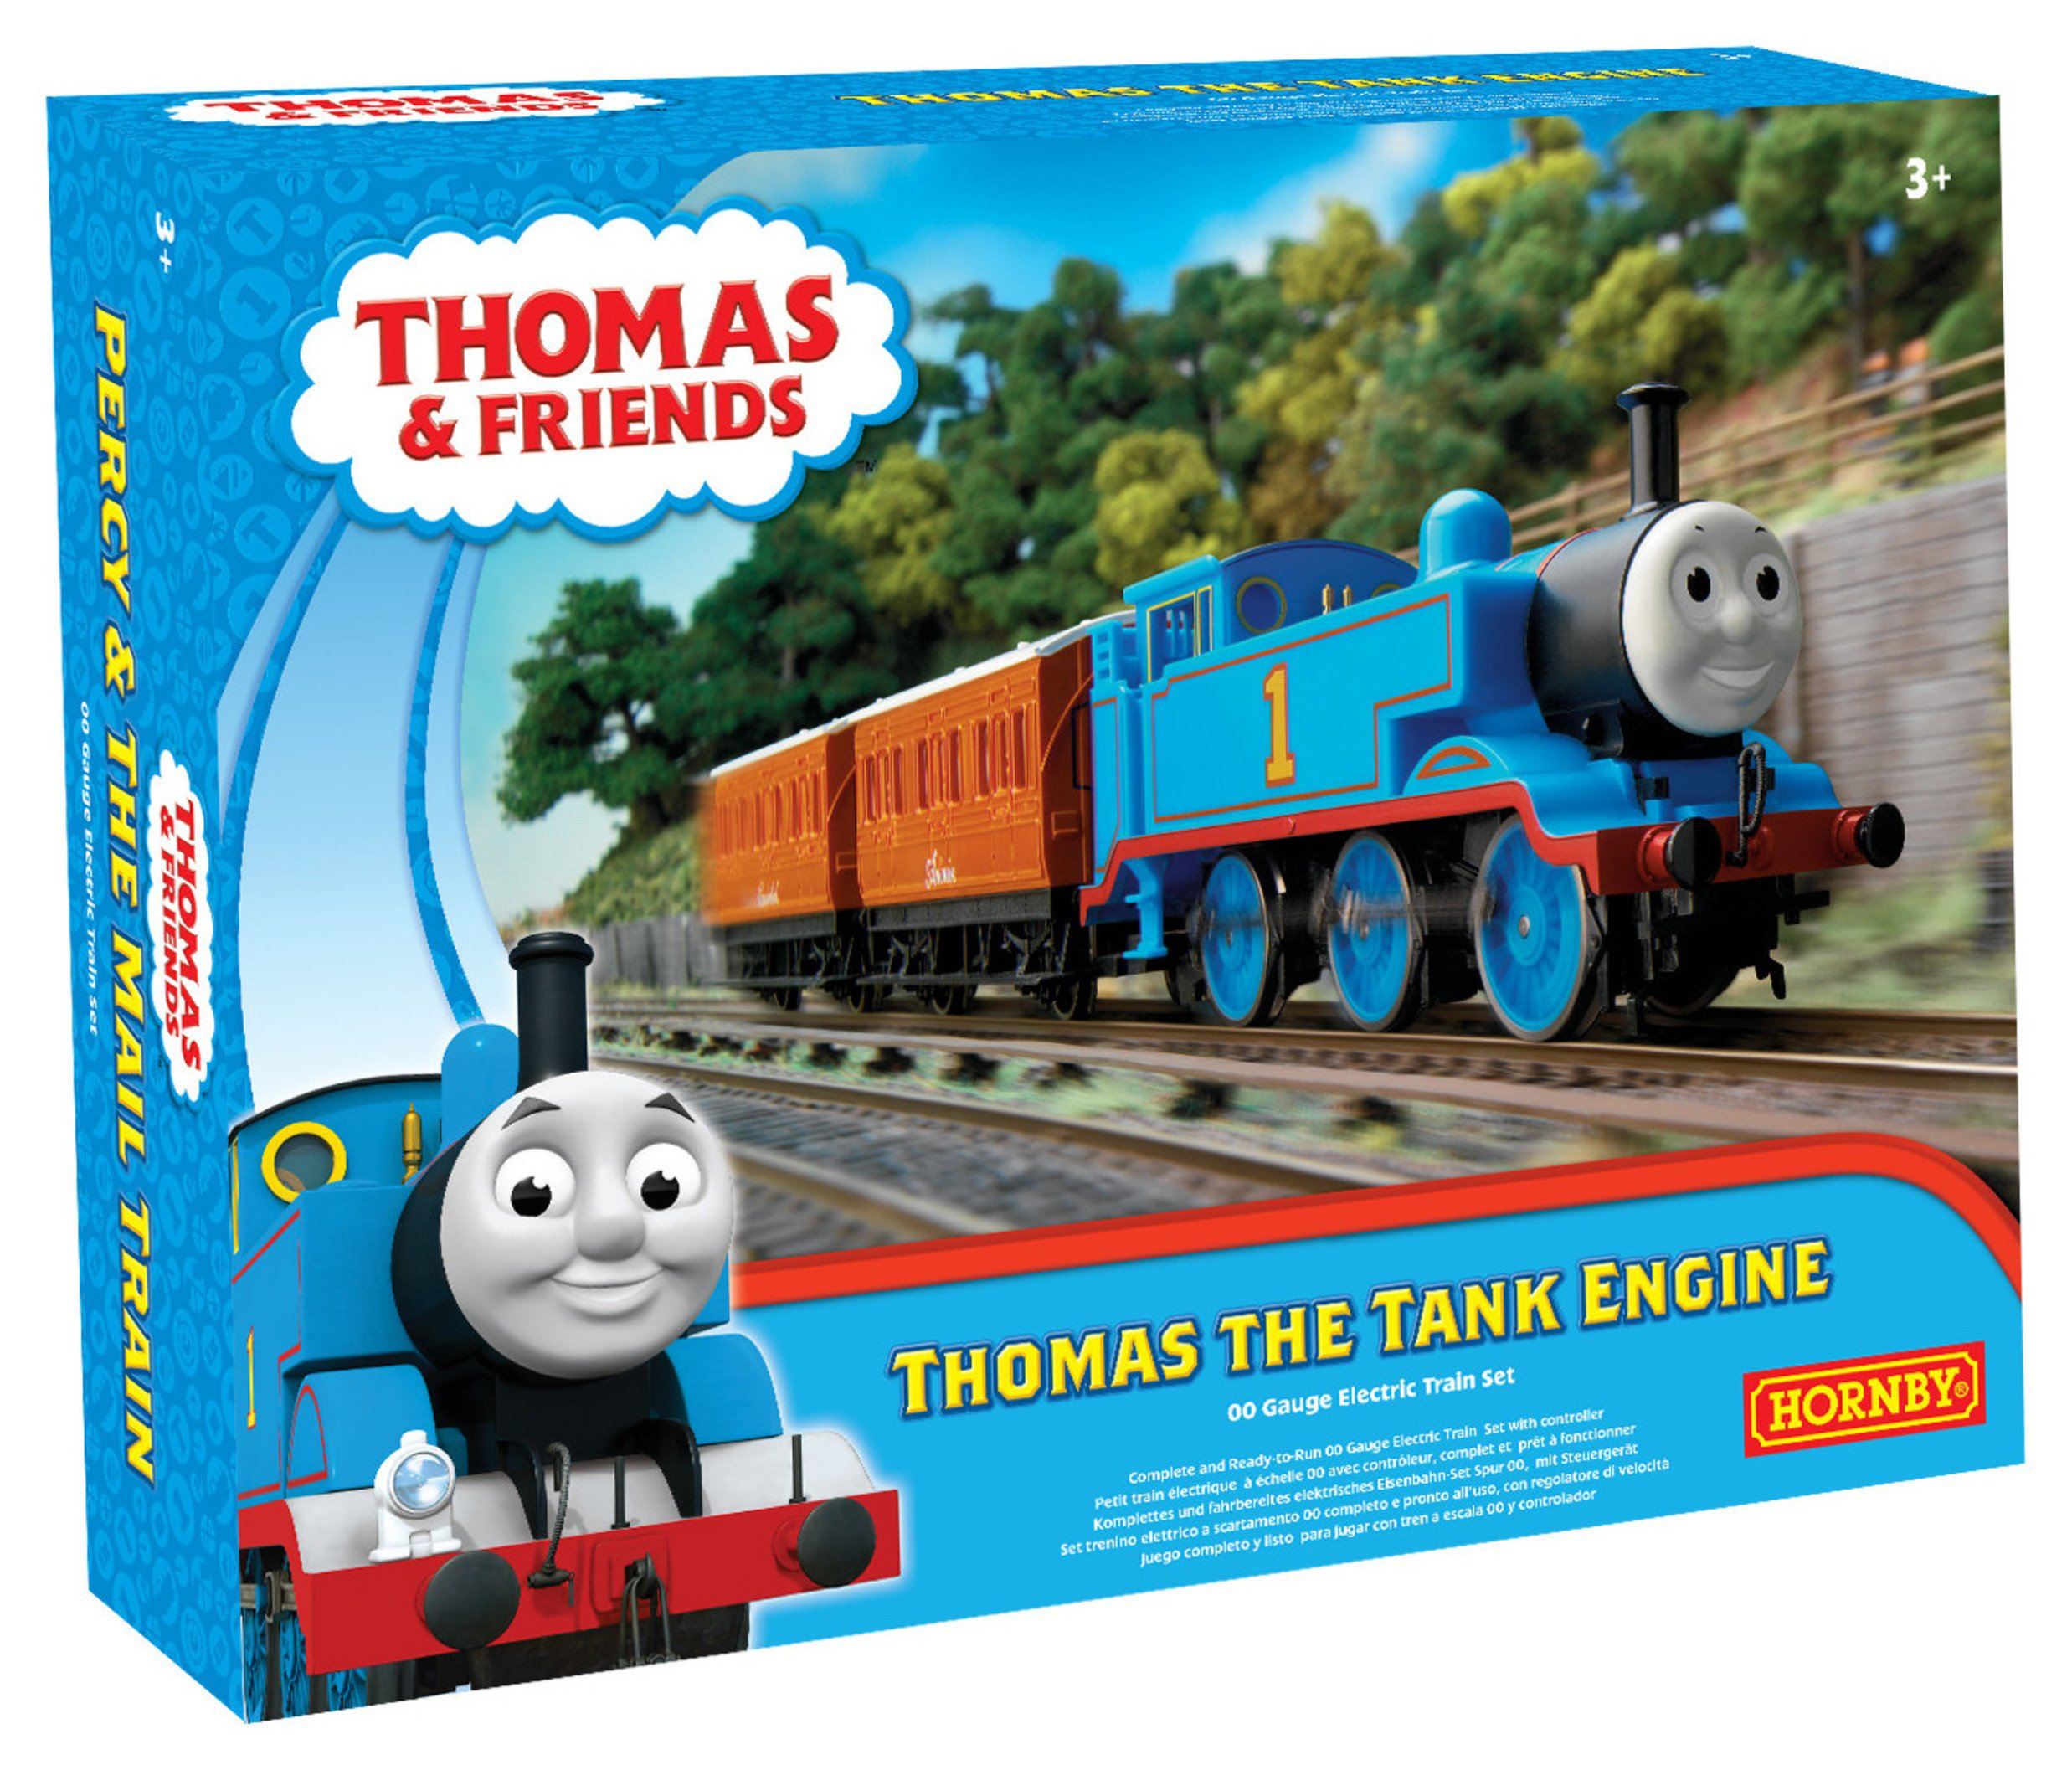 Hornby Thomas & Friends Train Set